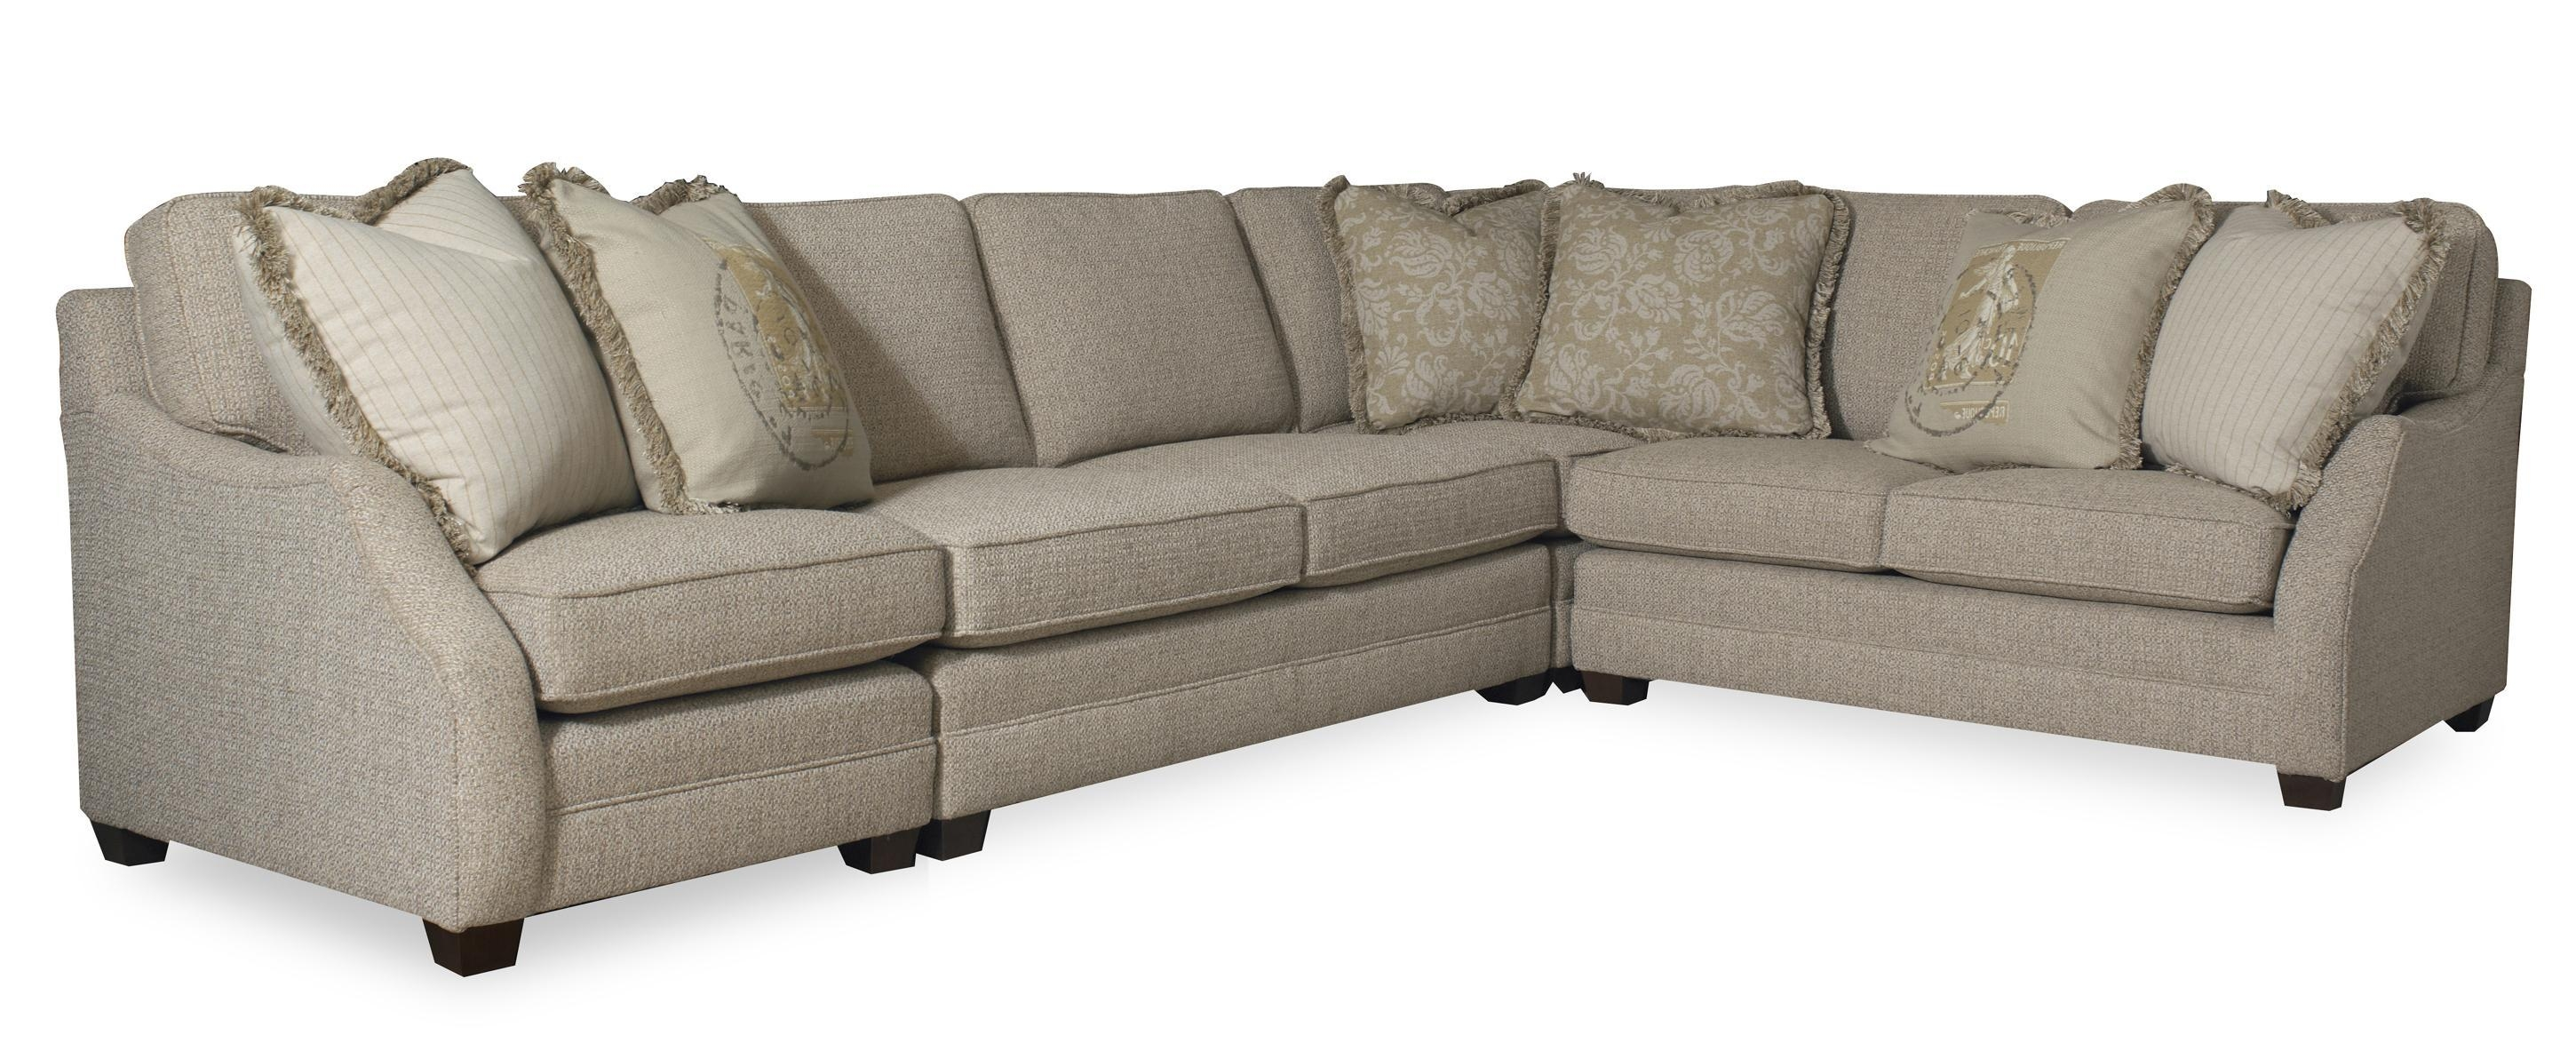 Transitional Three Piece Sectional Sofa With Raf Return In Sam Moore Sofas Image 20